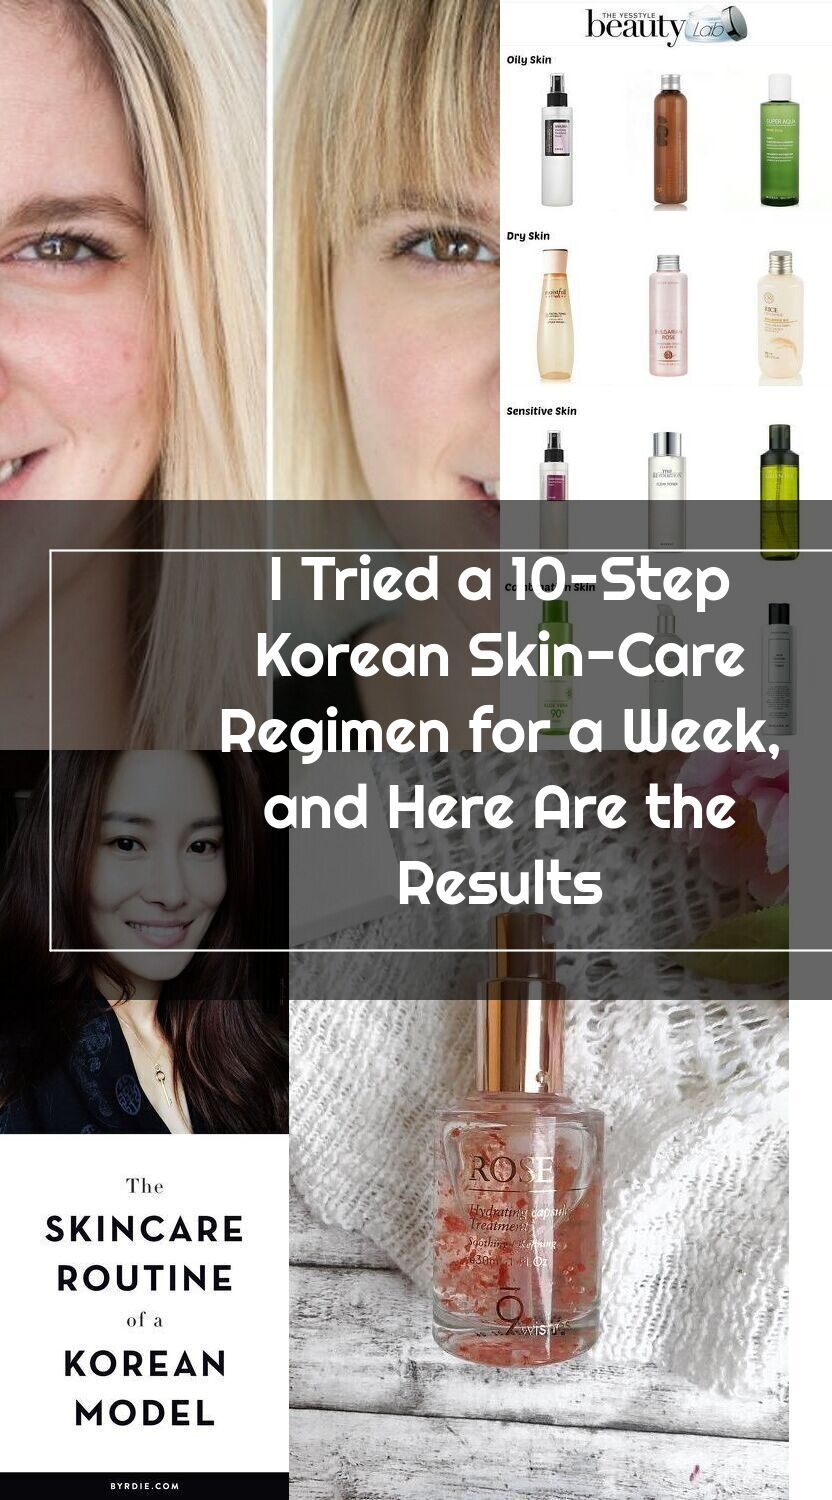 I Tried A 10 Step Korean Skincare Regimen For A Week And Here Are The Resu In 2020 Korean 10 Step Skin Care Skin Care Regimen Korean Skincare